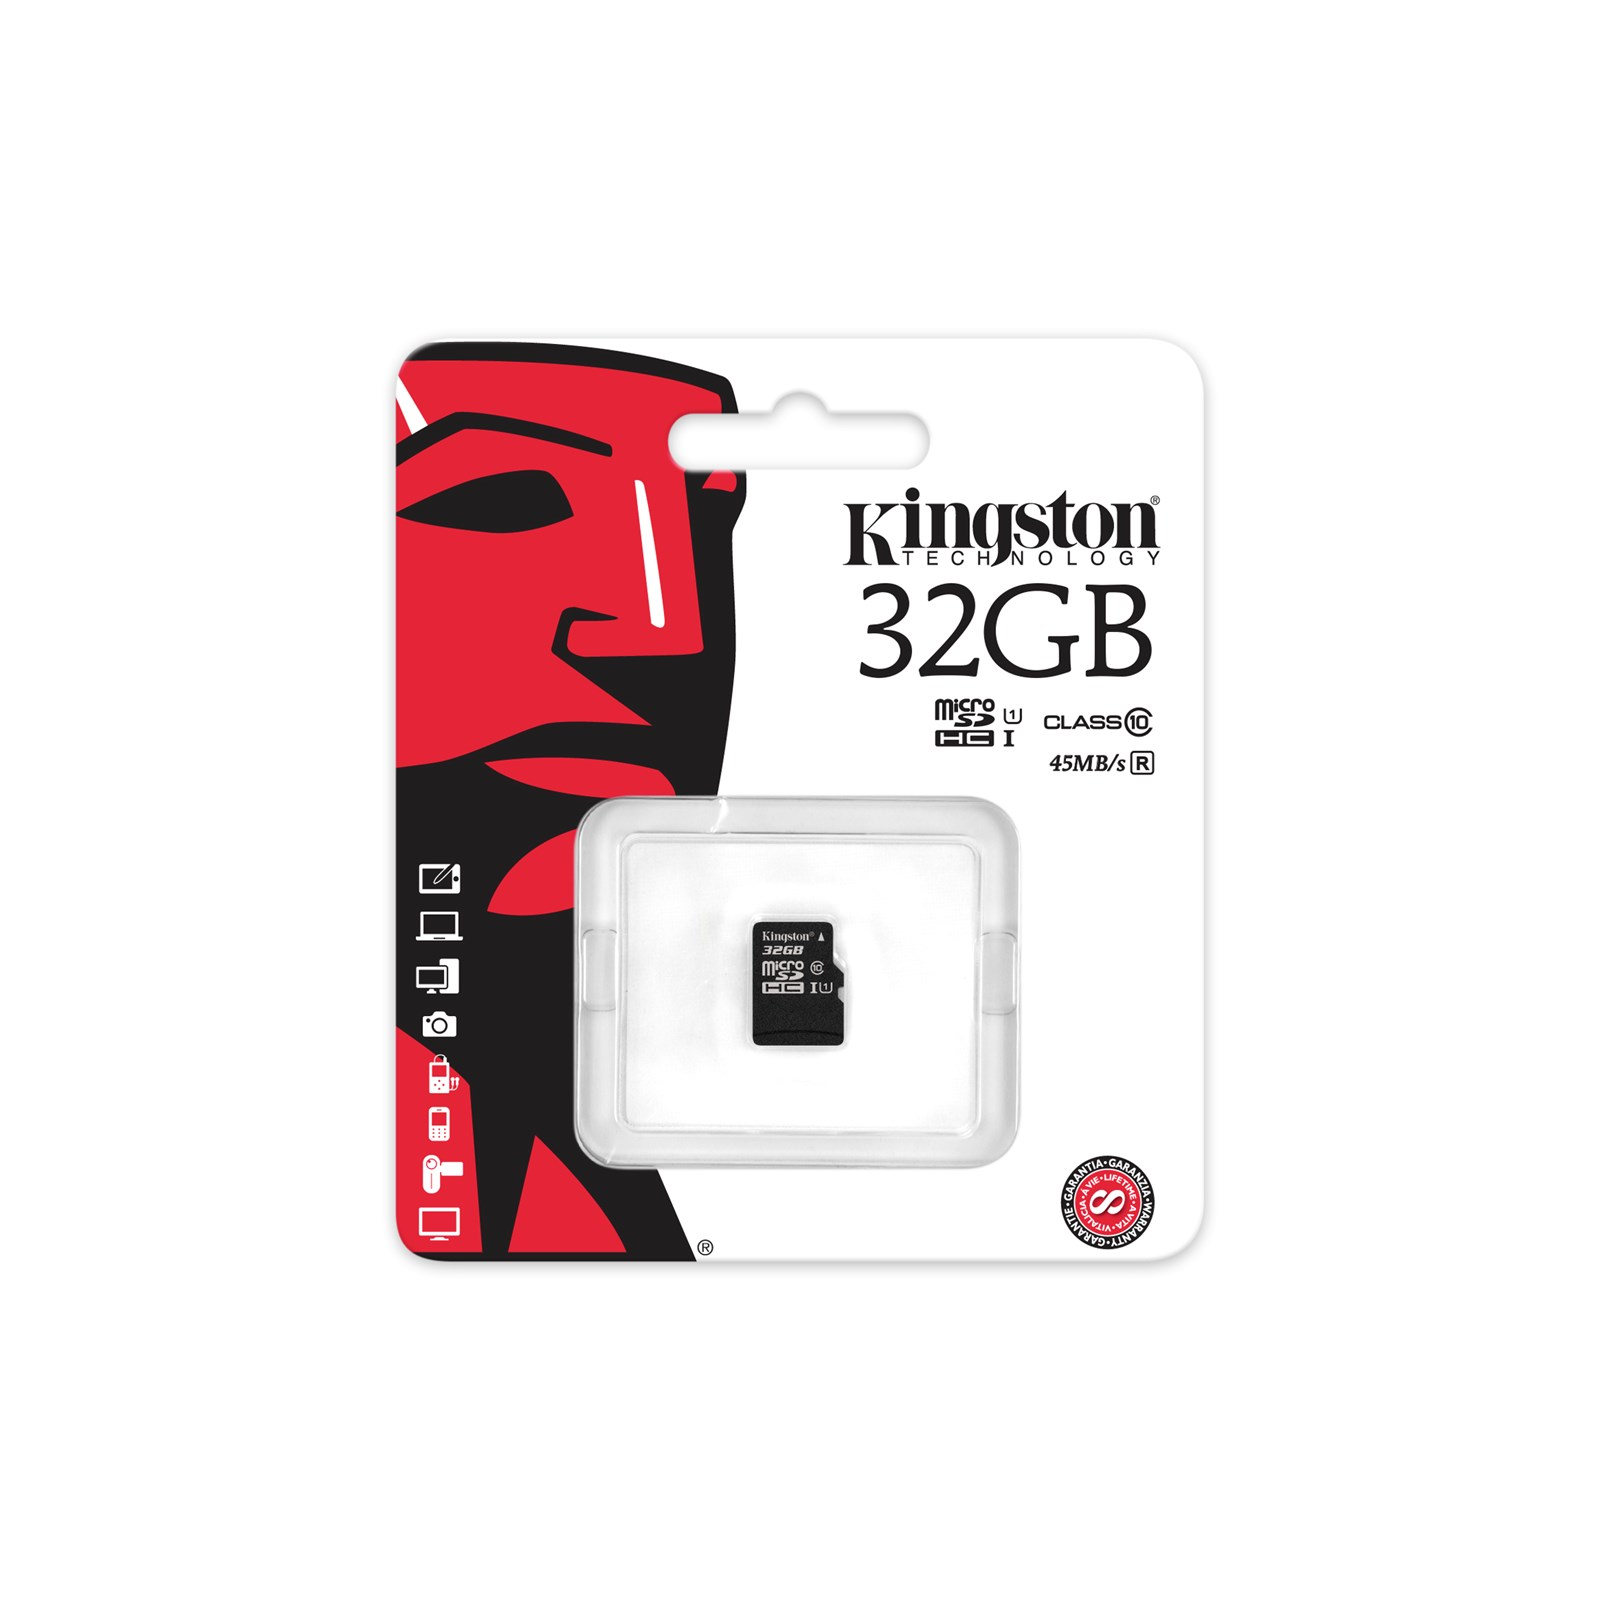 Kingston Paměťová karta flash - 32GB microSDHC UHS-I